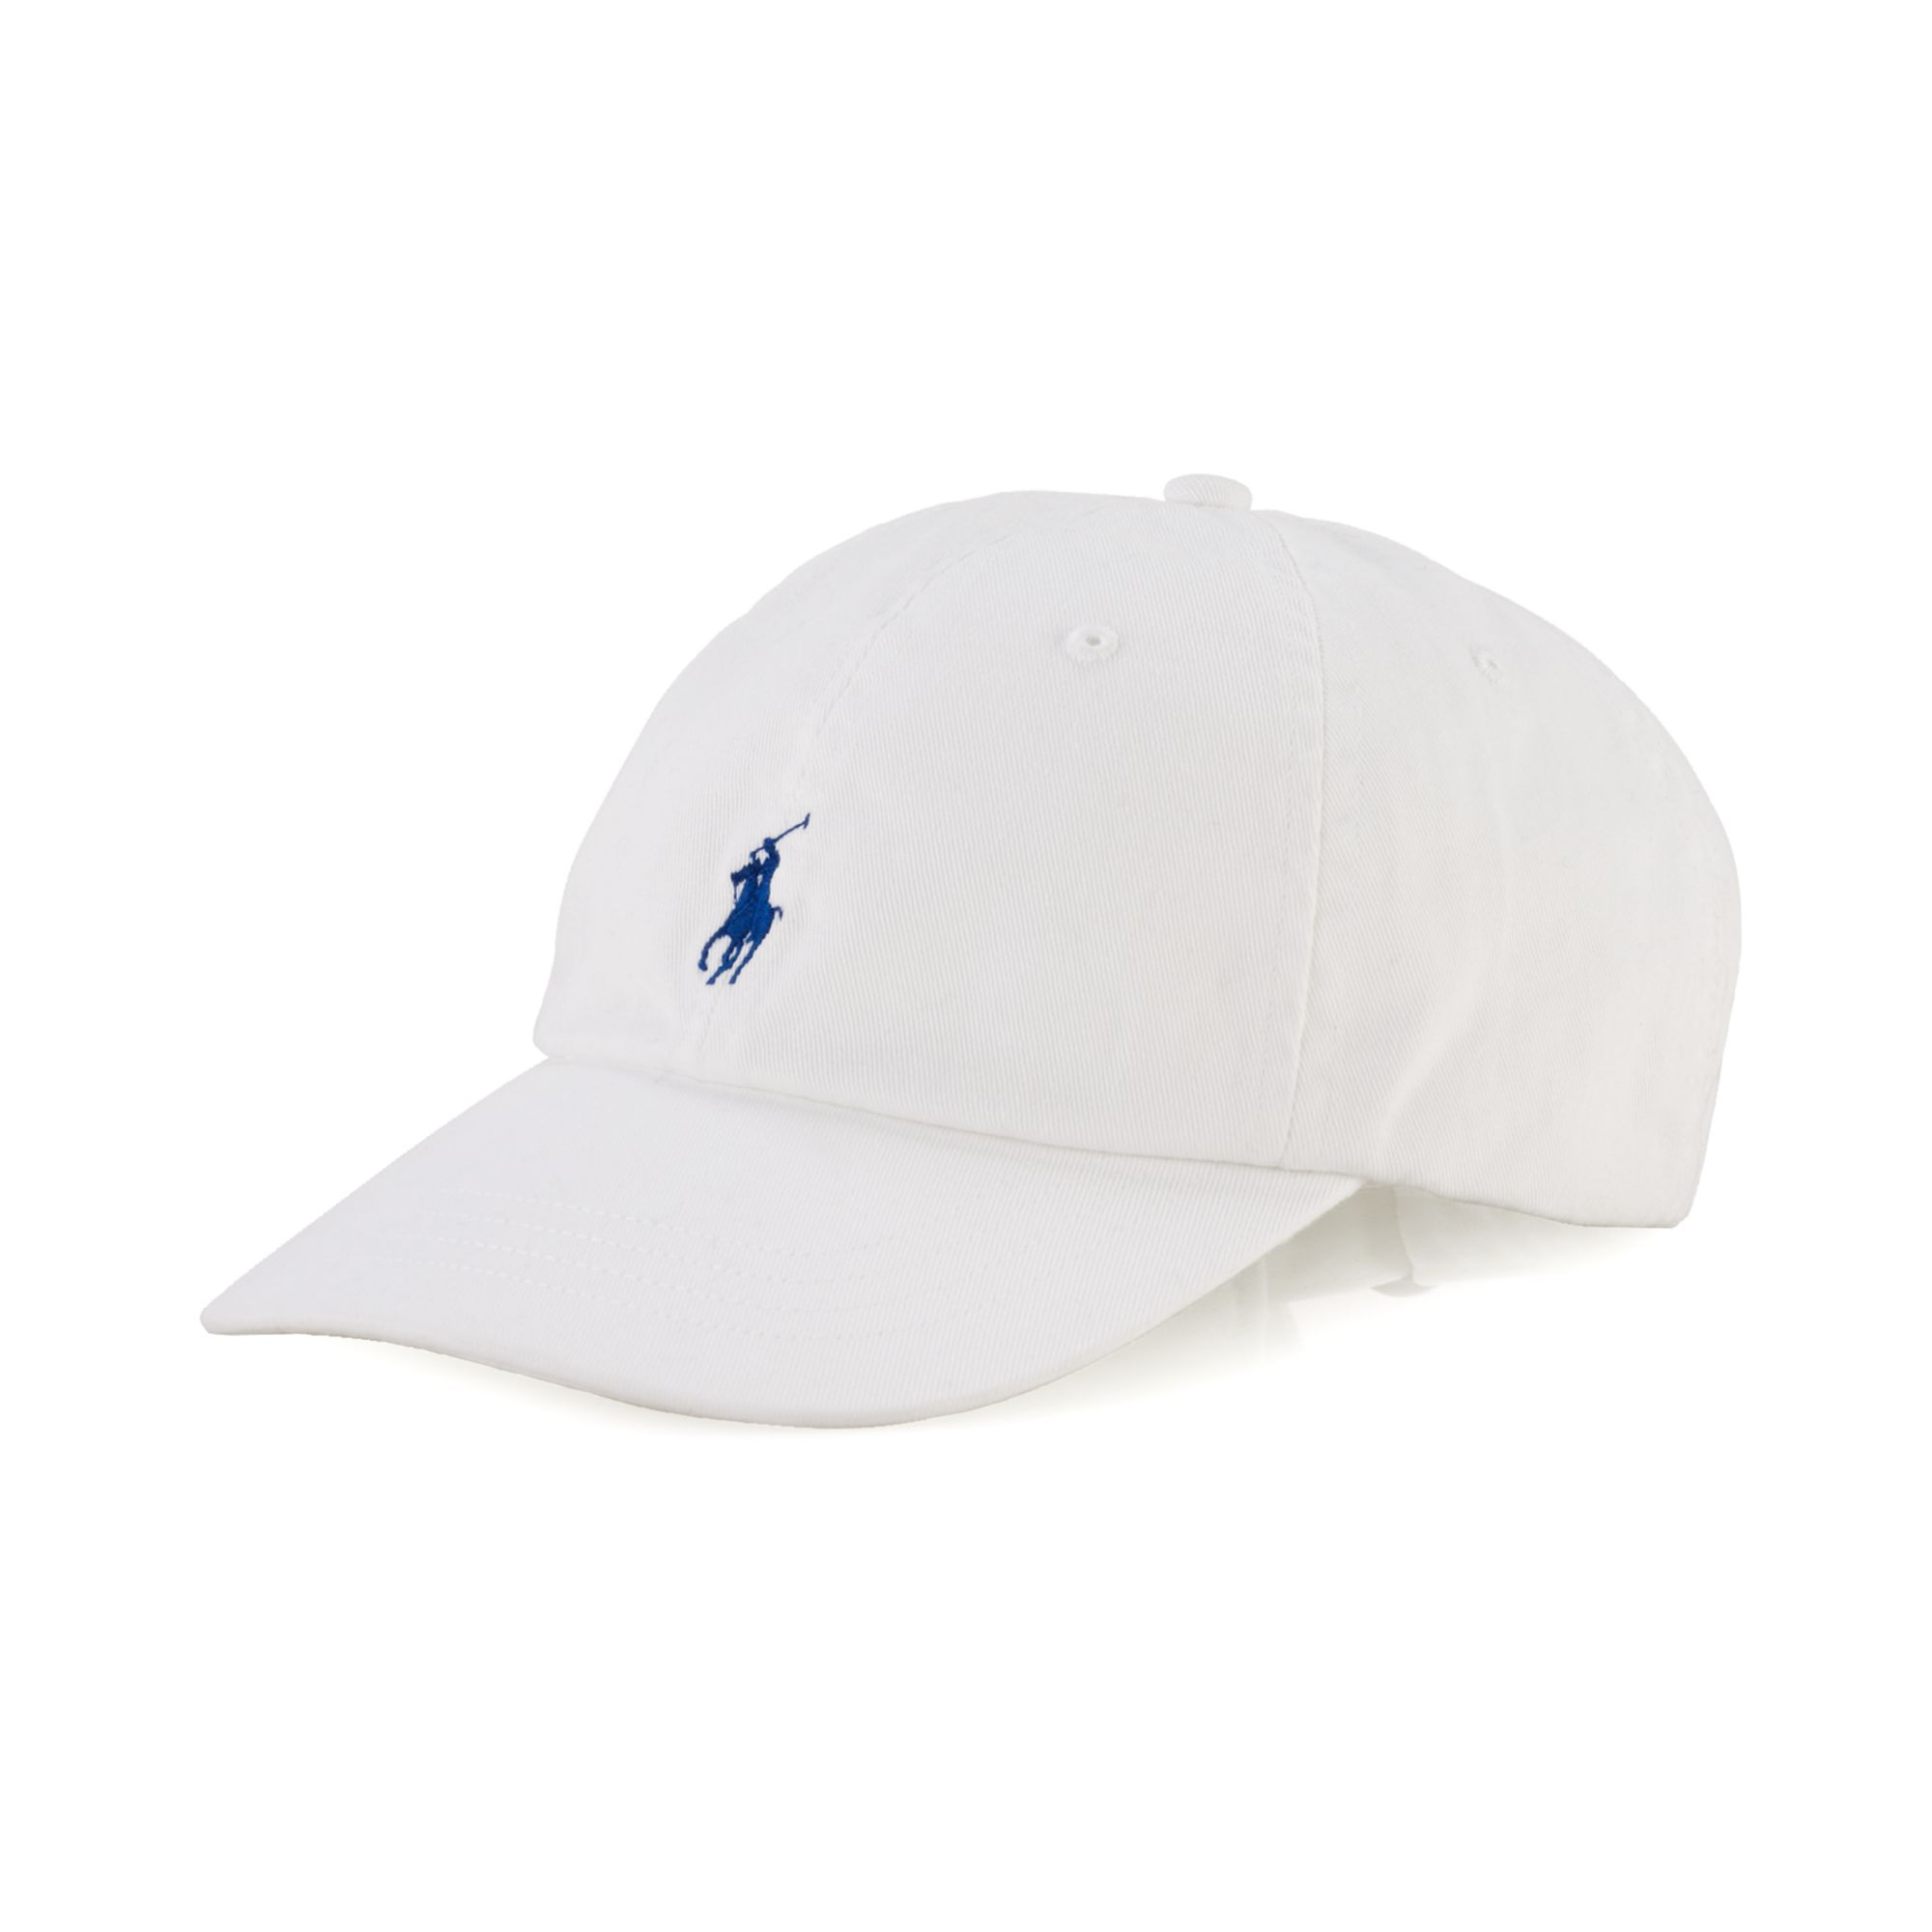 polo ralph lauren core classic sport cap in white for men. Black Bedroom Furniture Sets. Home Design Ideas